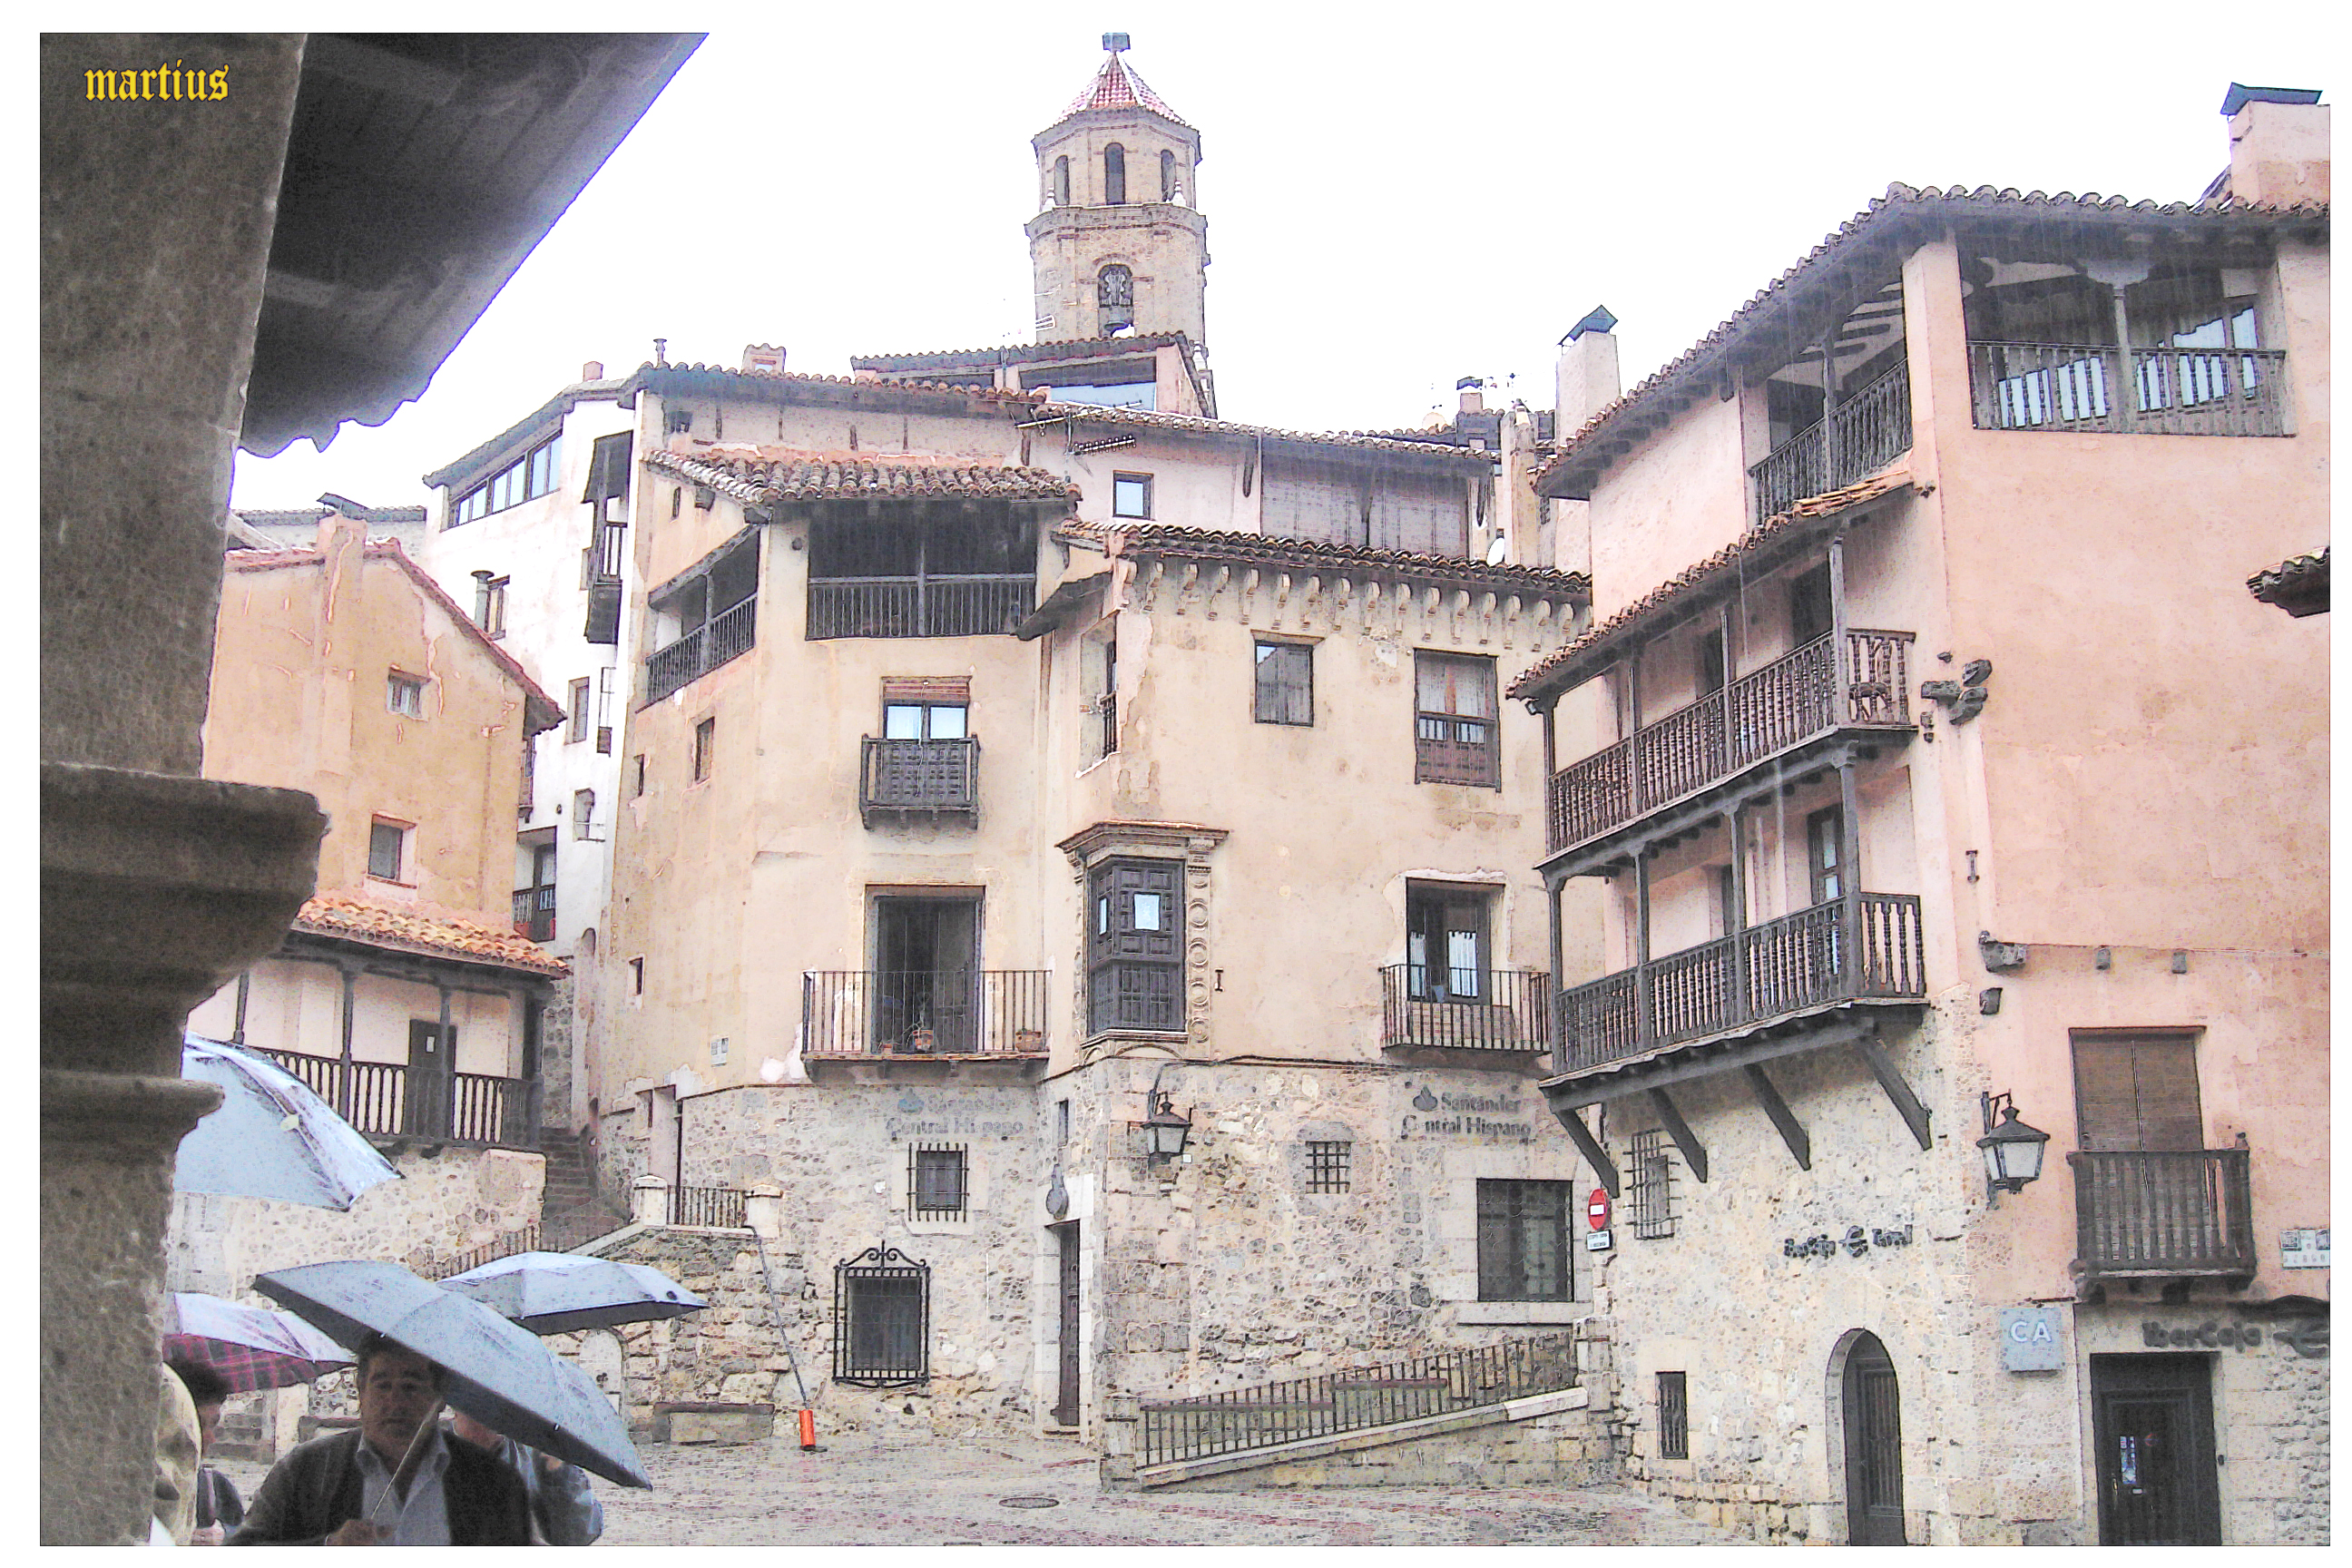 File:Albarracín (Teruel) 01.jpg - Wikimedia Commons